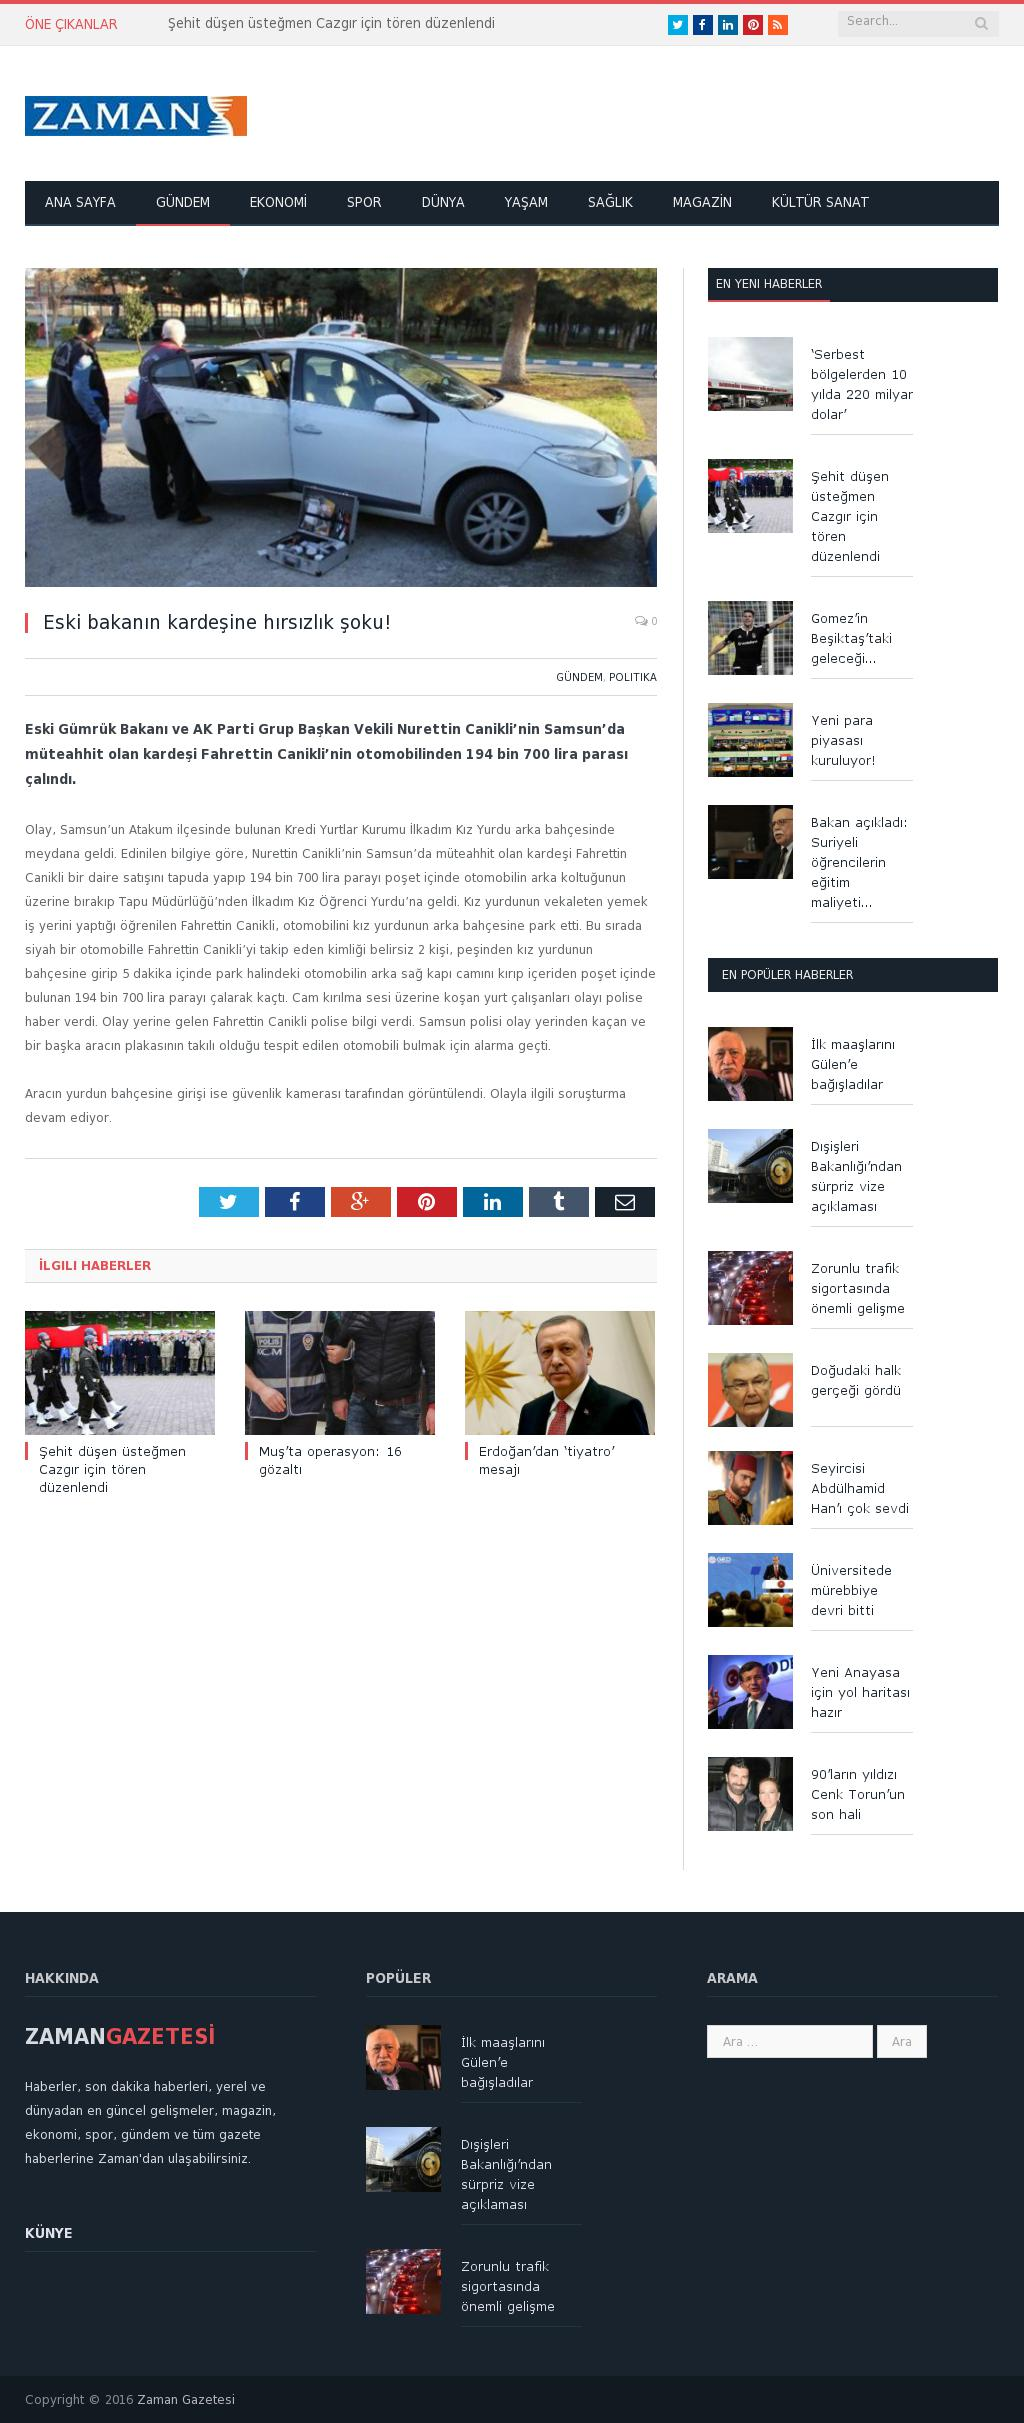 Zaman Online at Sunday March 27, 2016, 9:23 a.m. UTC